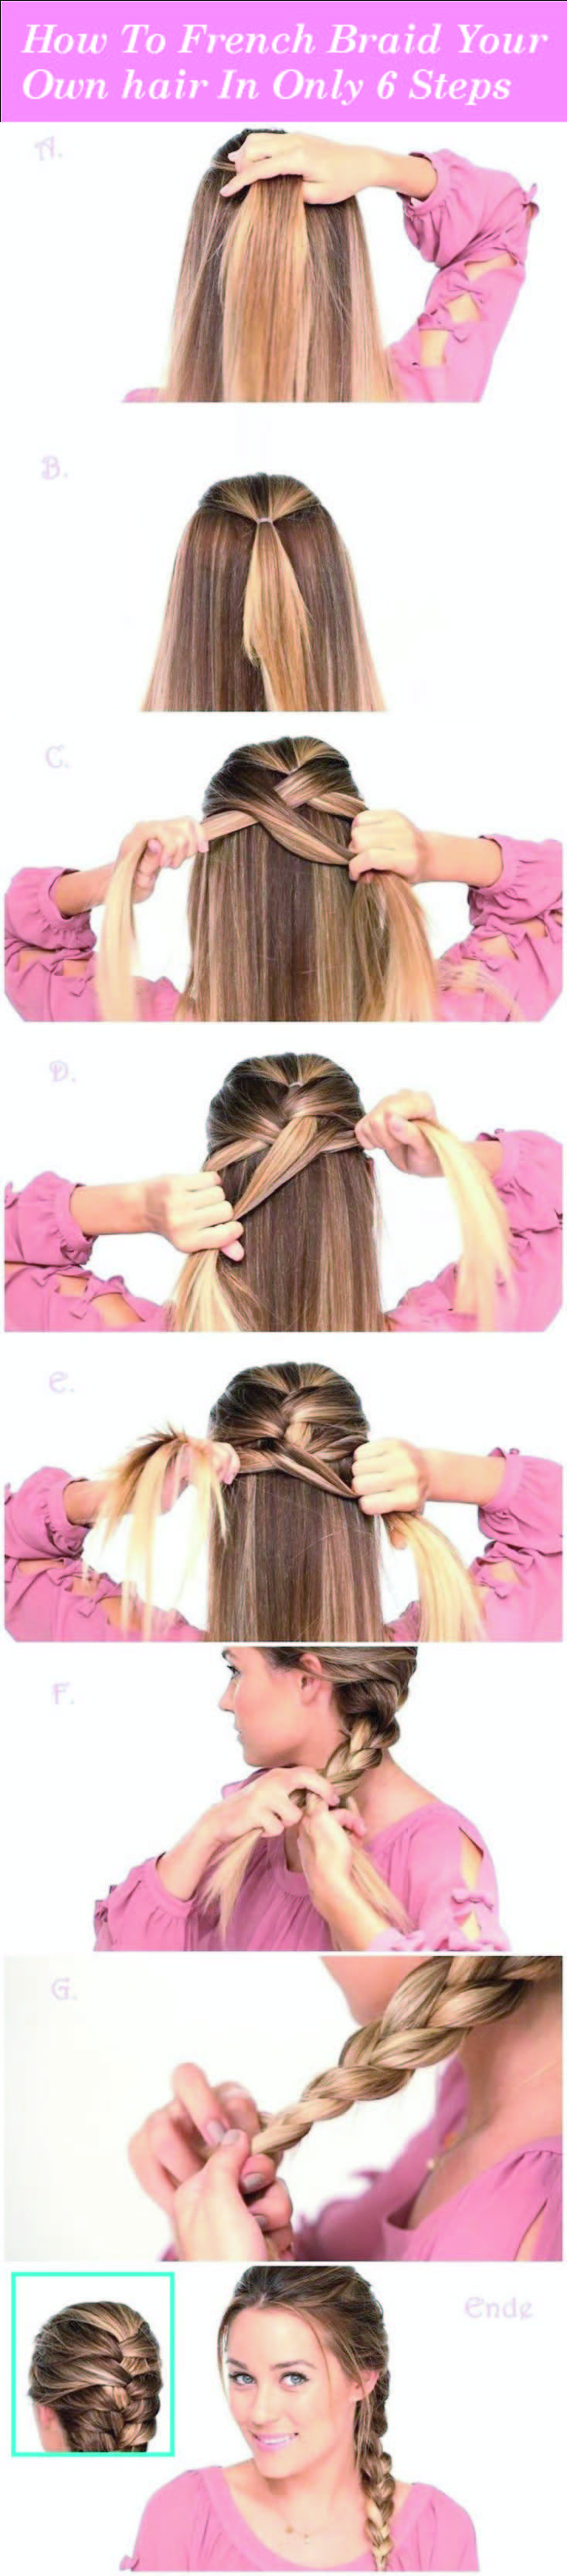 Fancy French Braids Want To Know How To French Braid Your Hair French Braids Are Very Easy T Hair Styles Long Hair Styles Braided Hairstyles Tutorials Easy